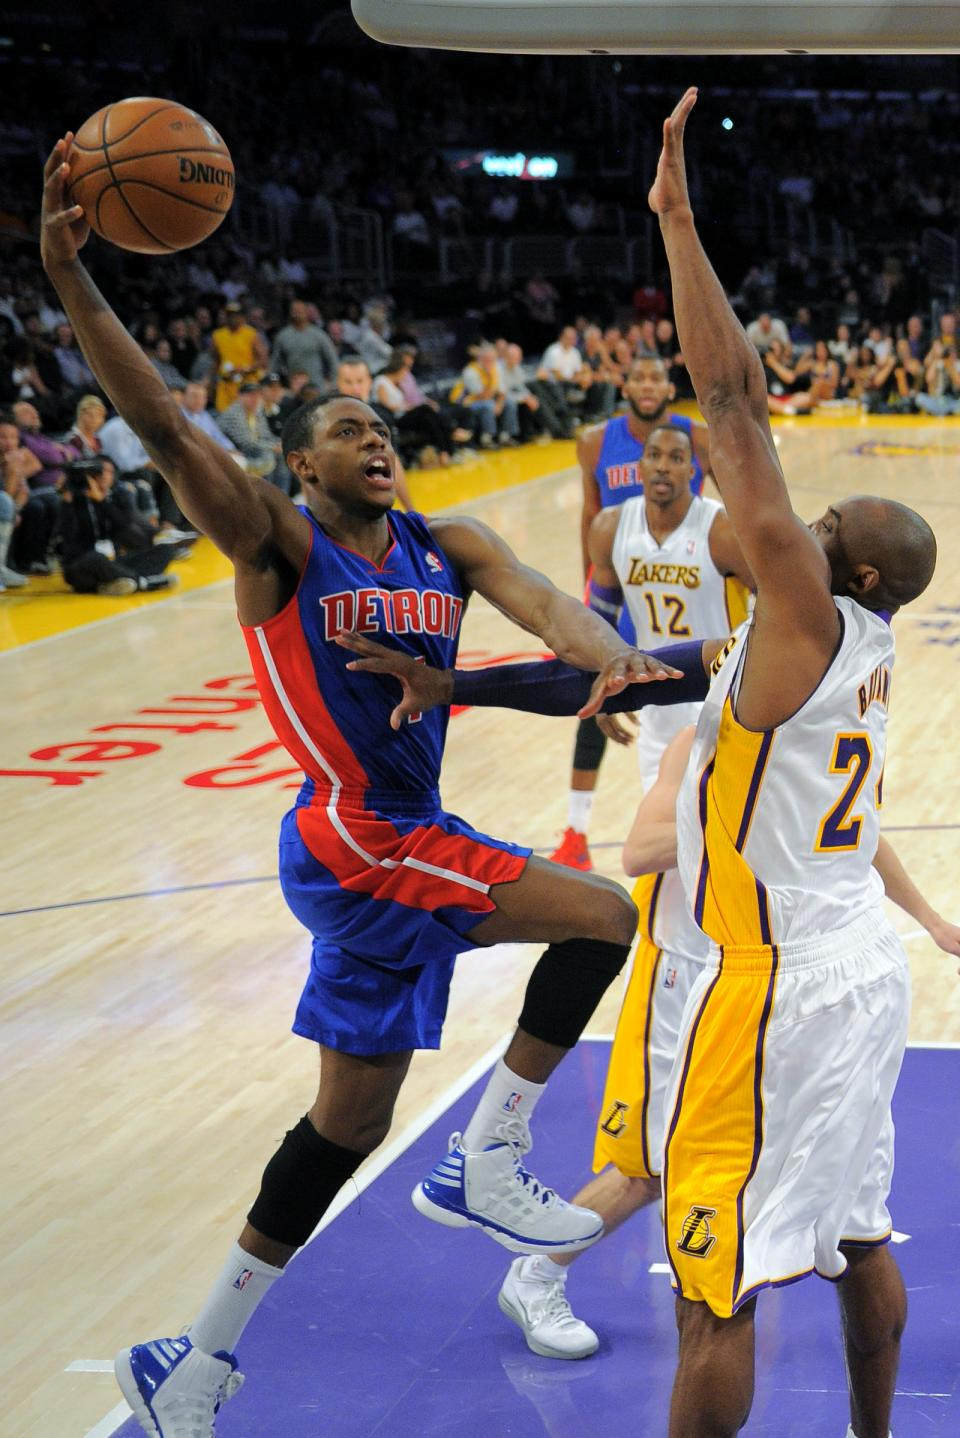 Detroit Pistons guard Brandon Knight, left, puts up a shot as Los Angeles Lakers guard Kobe Bryant defends during the first half of their NBA basketball game, Sunday, Nov. 4, 2012, in Los Angeles. (AP Photo/Mark J. Terrill)